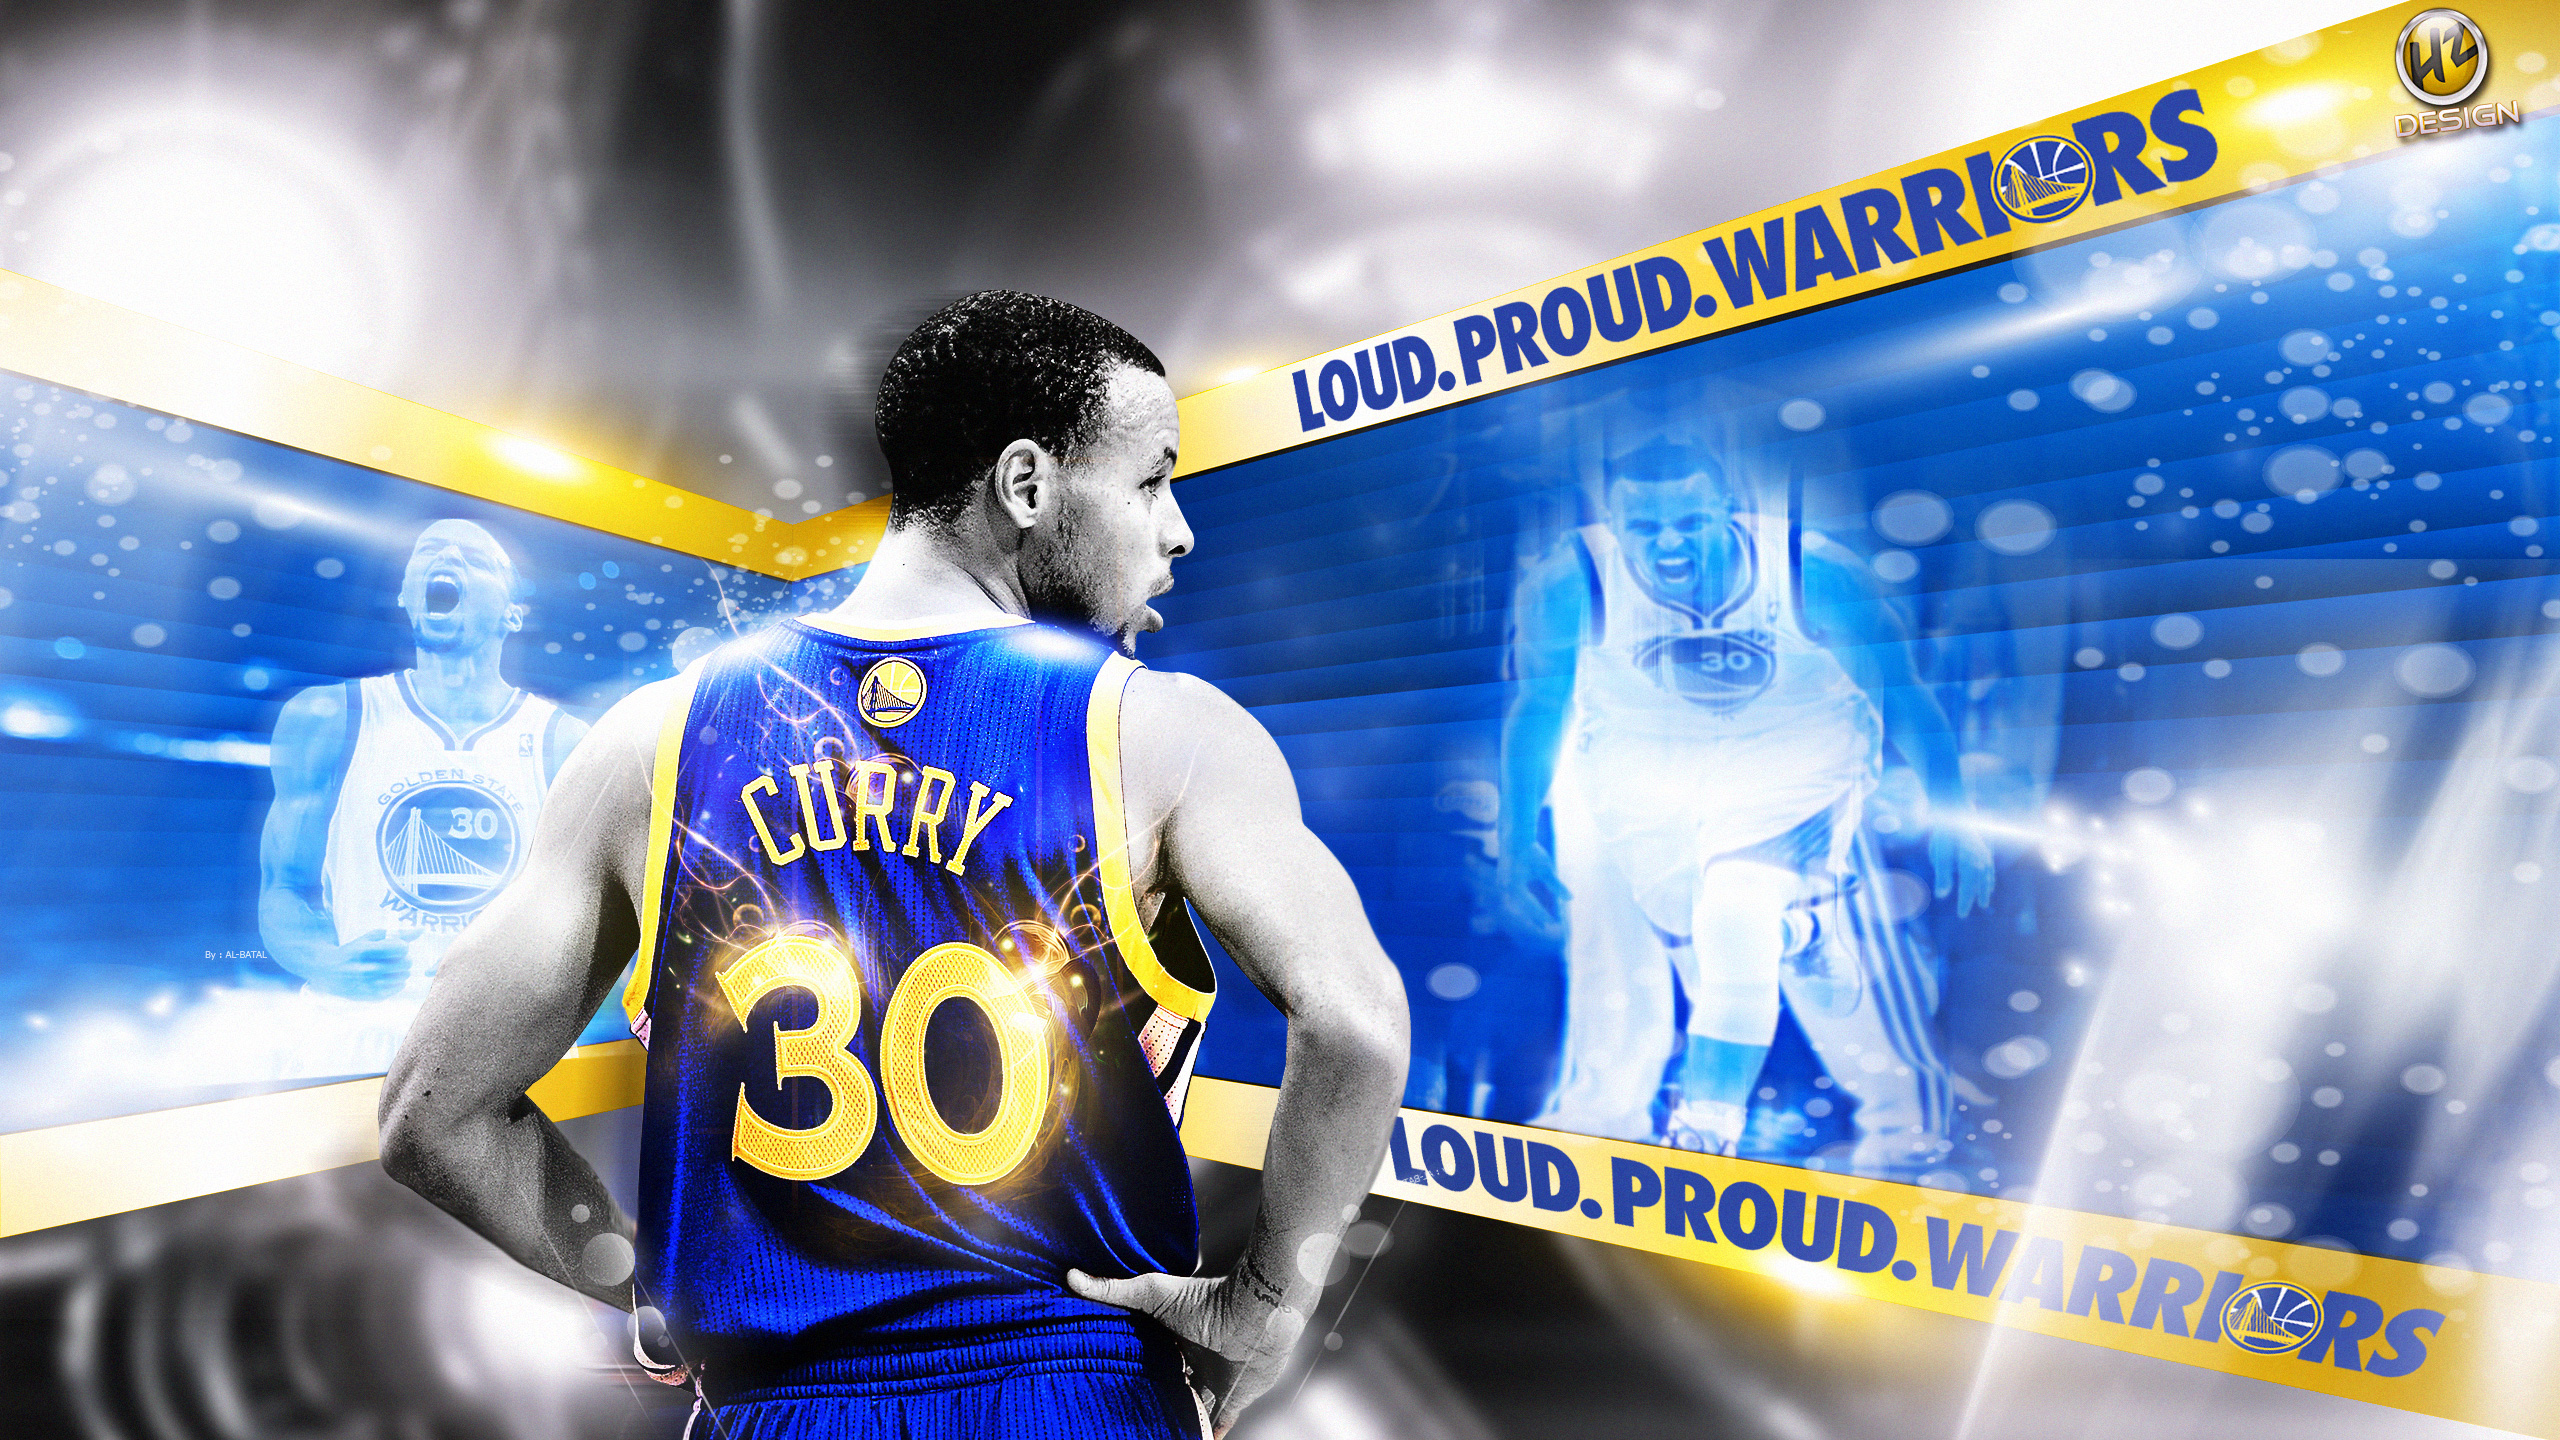 Stephen Curry Wallpaper Iphone The Art Mad Wallpapers 2560x1440